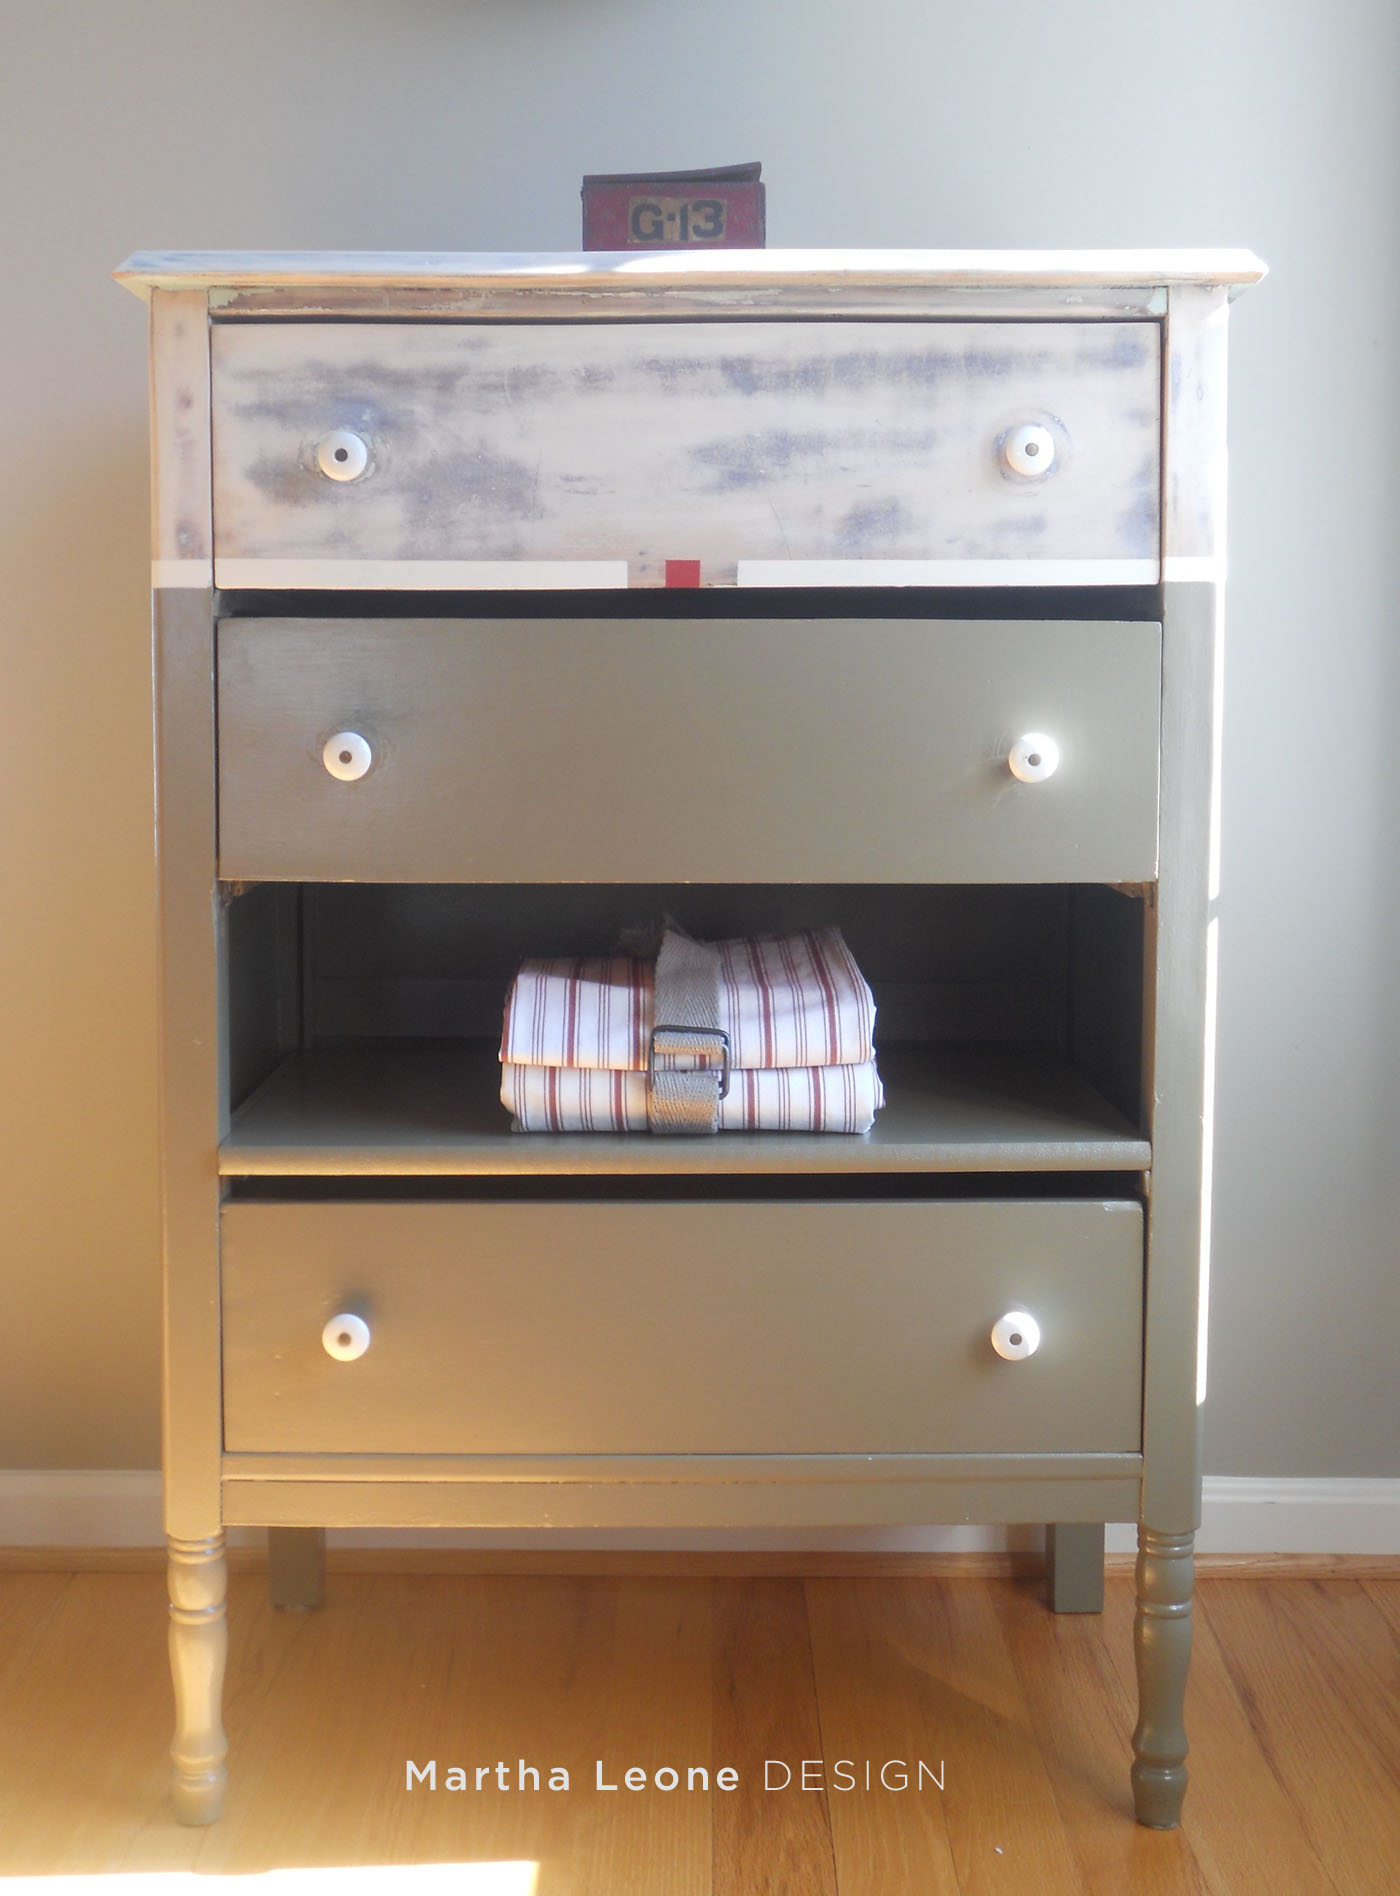 Army Dresser 1 at MarthaLeoneDesign